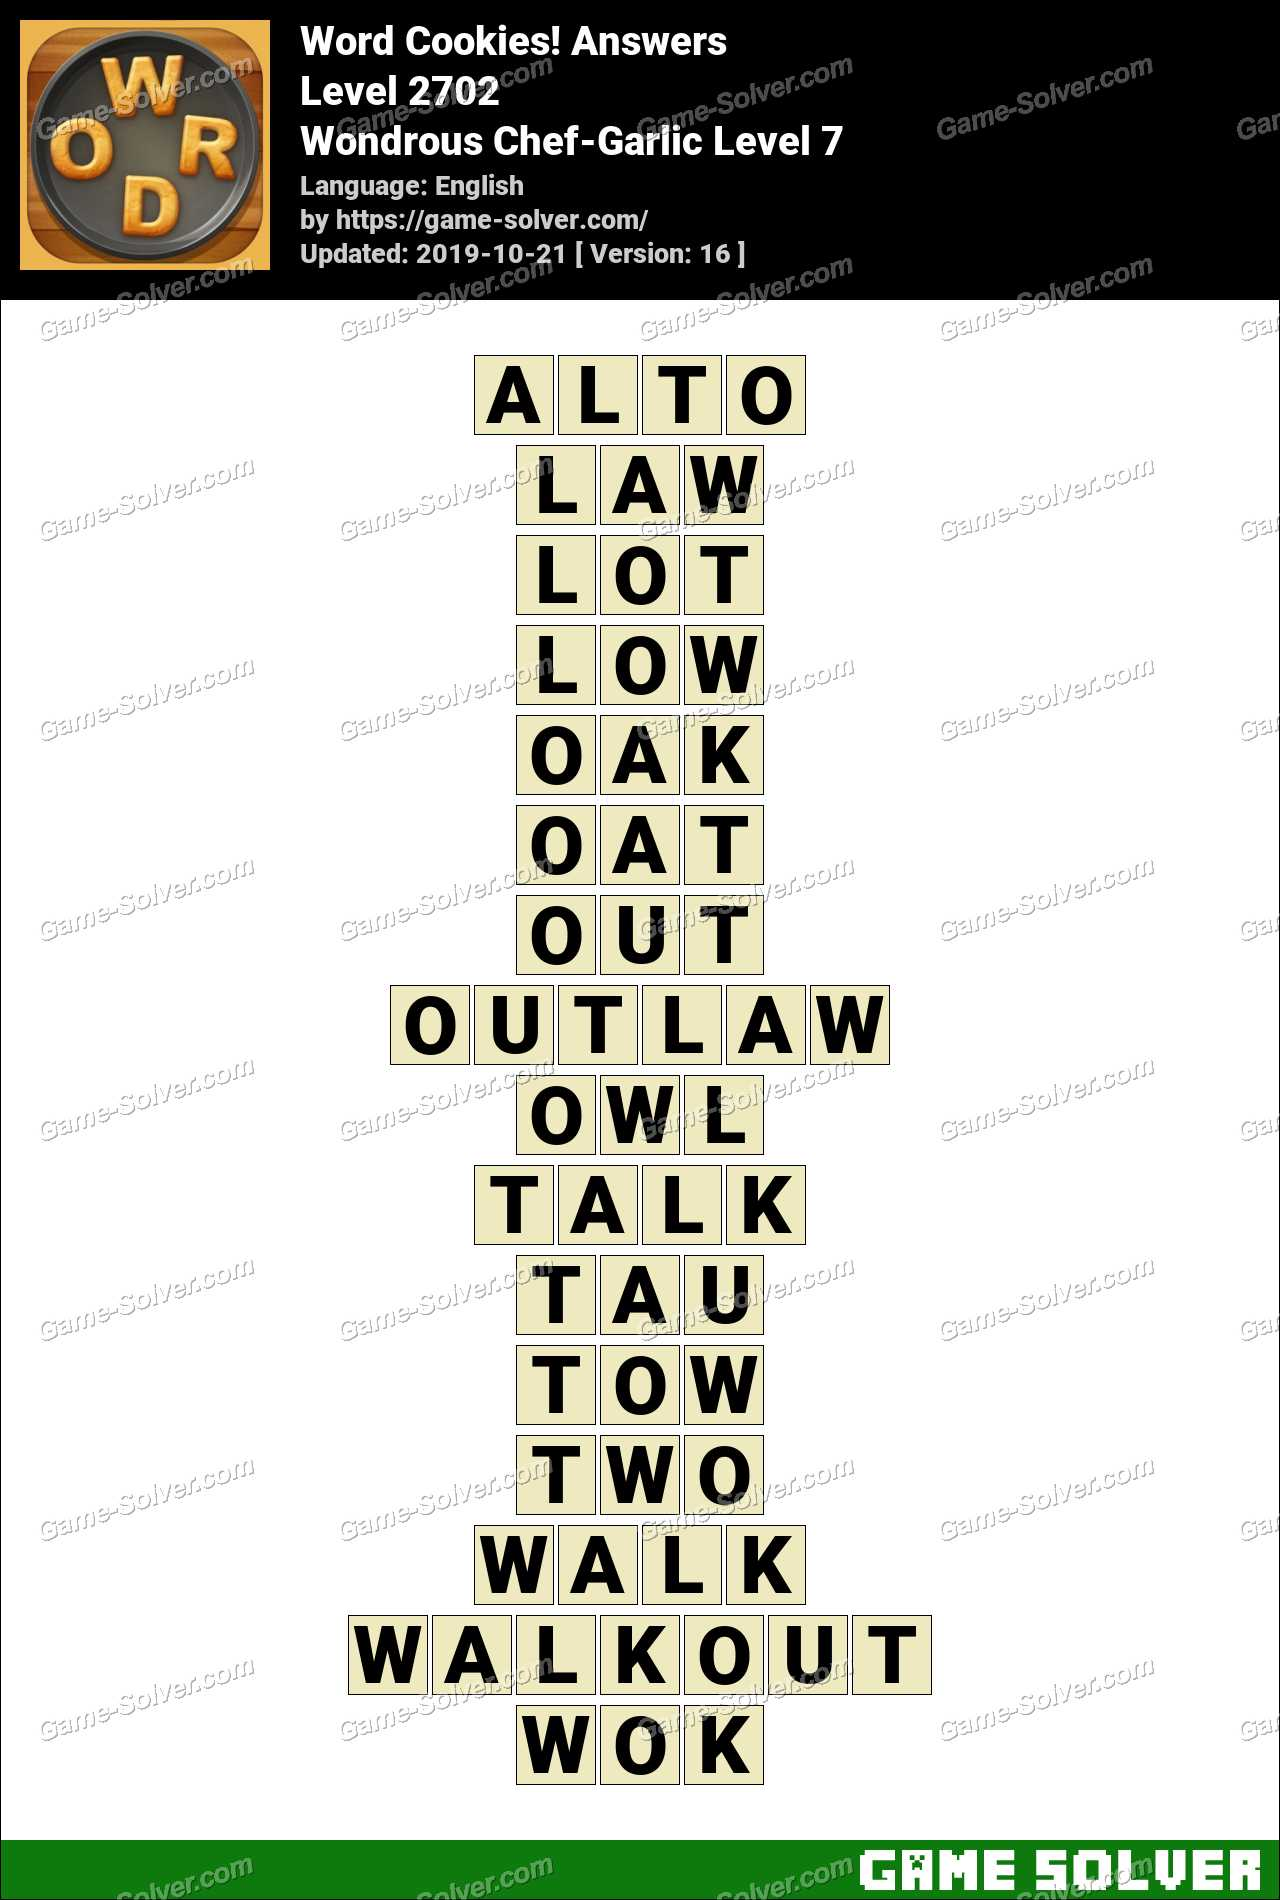 Word Cookies Wondrous Chef-Garlic Level 7 Answers